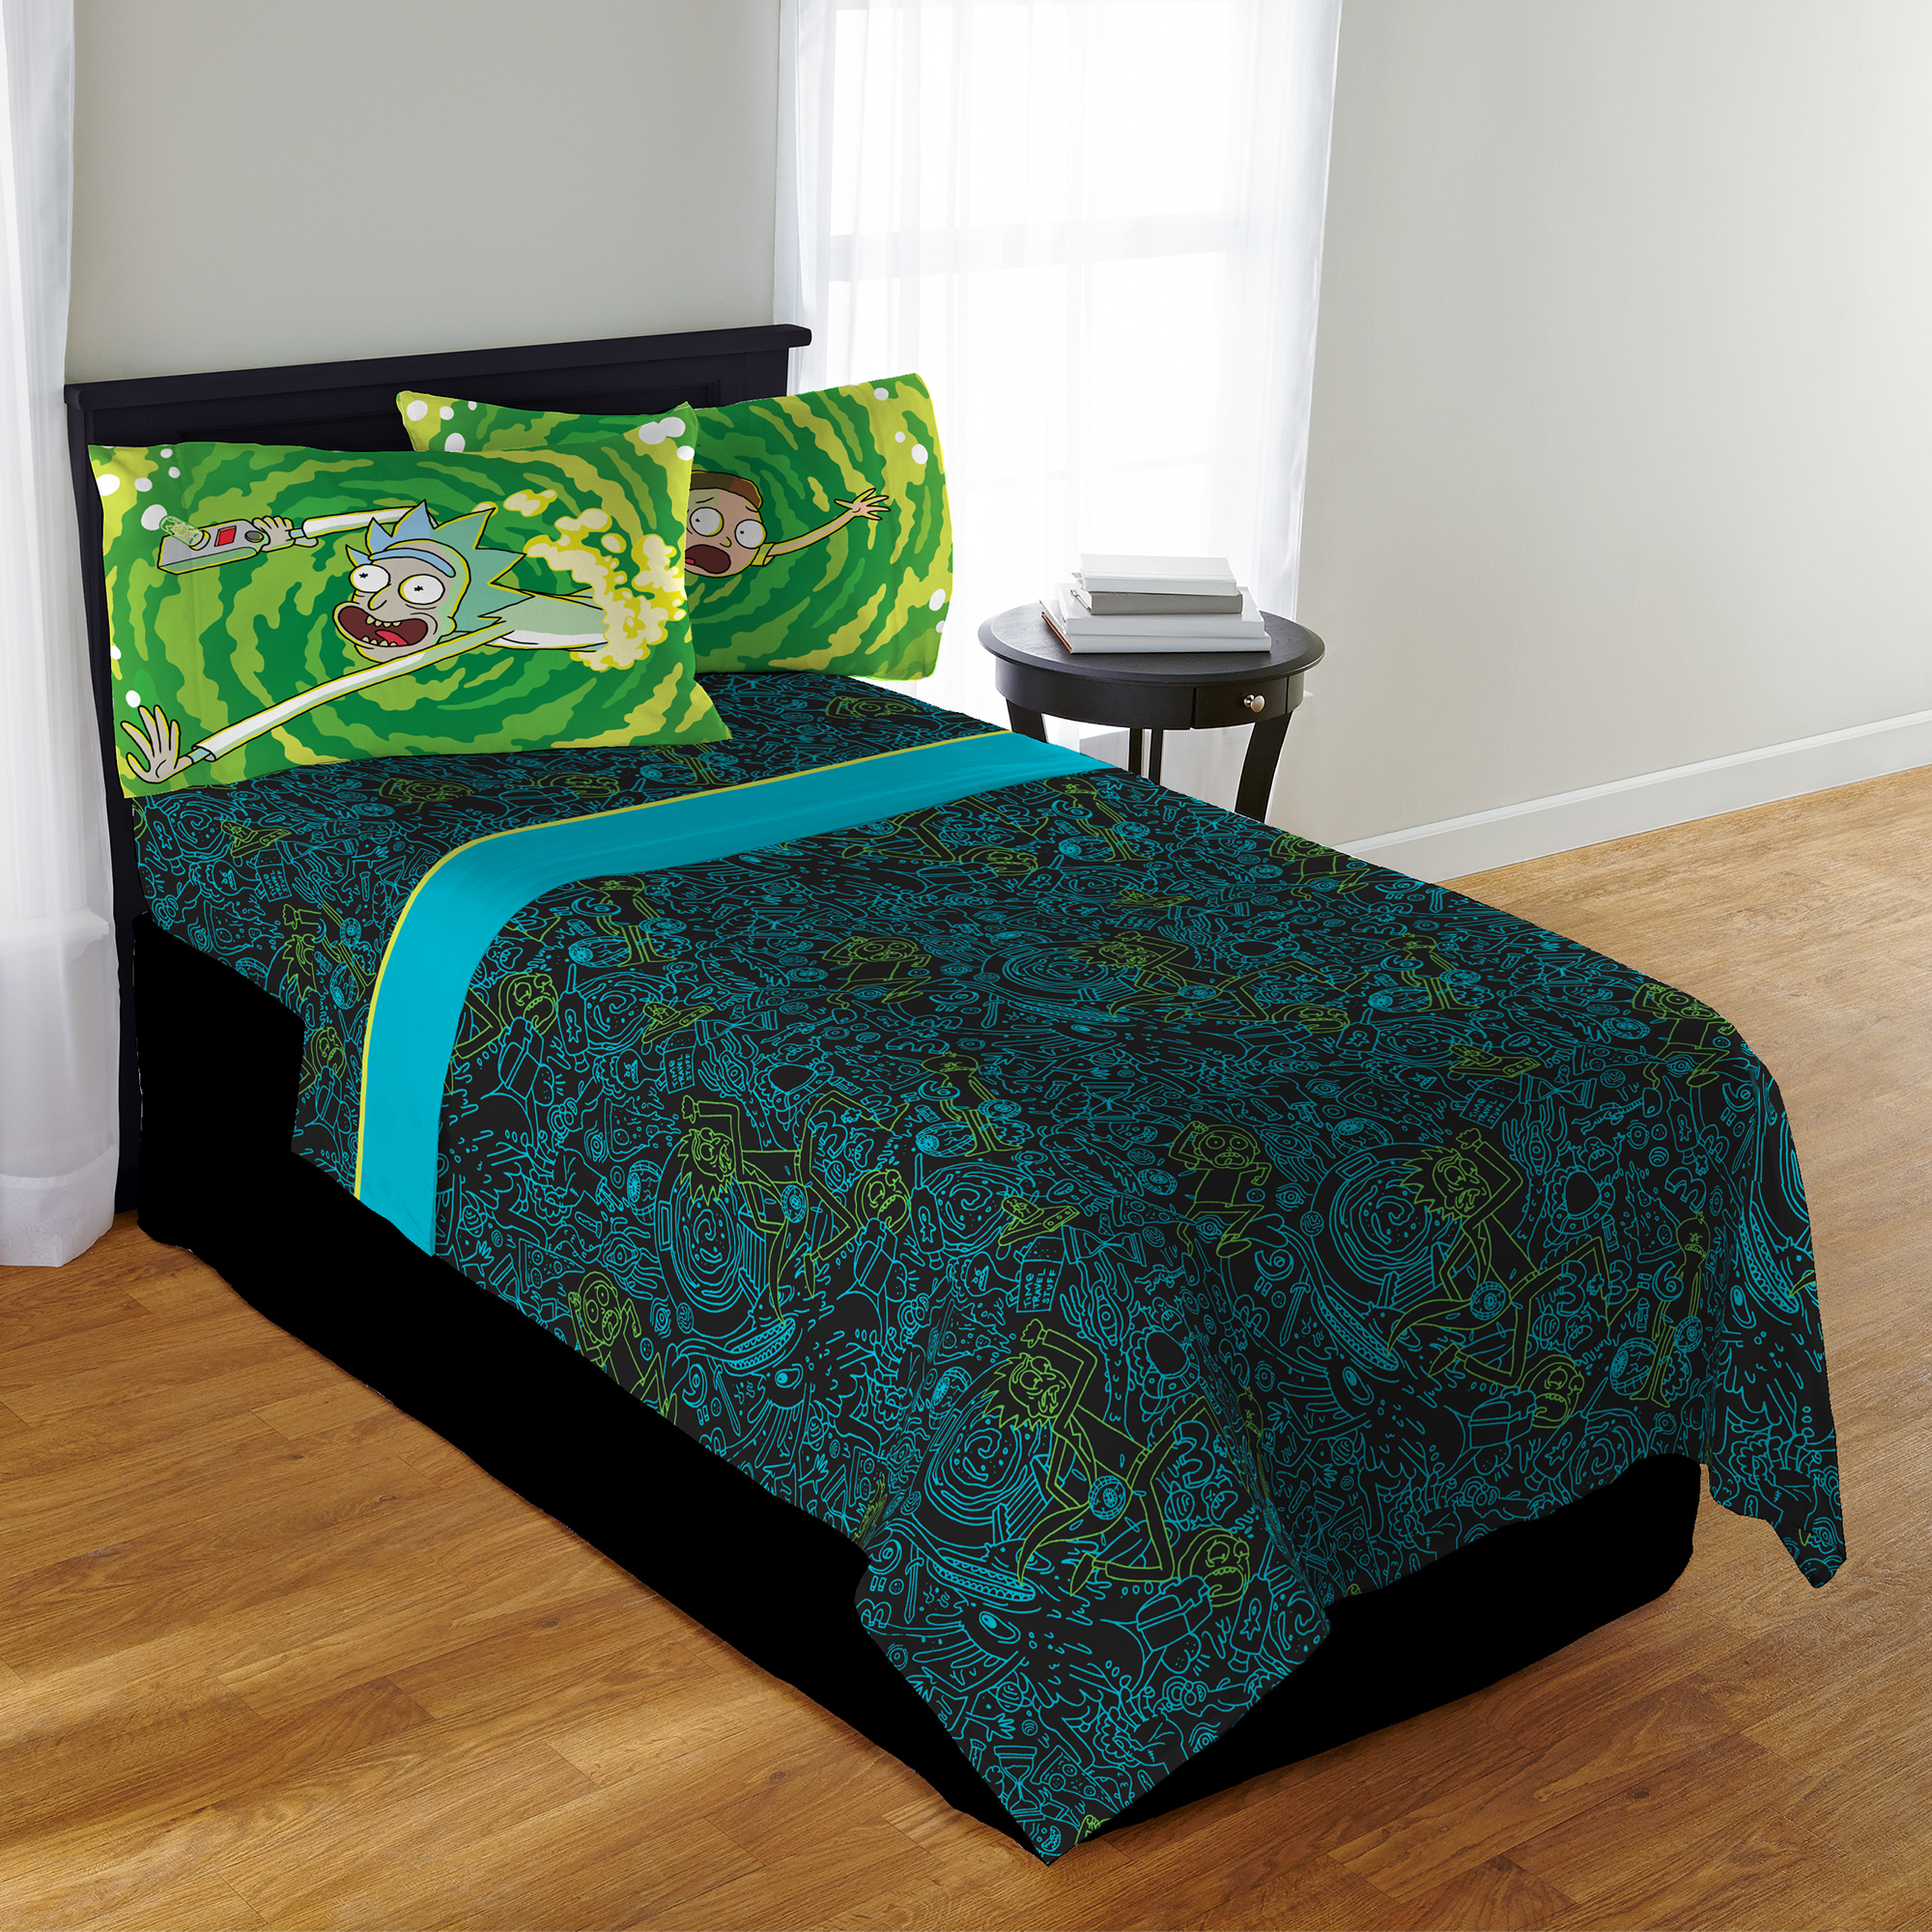 Rick & Morty Kids Bedding SHeet Set, Twin by Franco Manufacturing